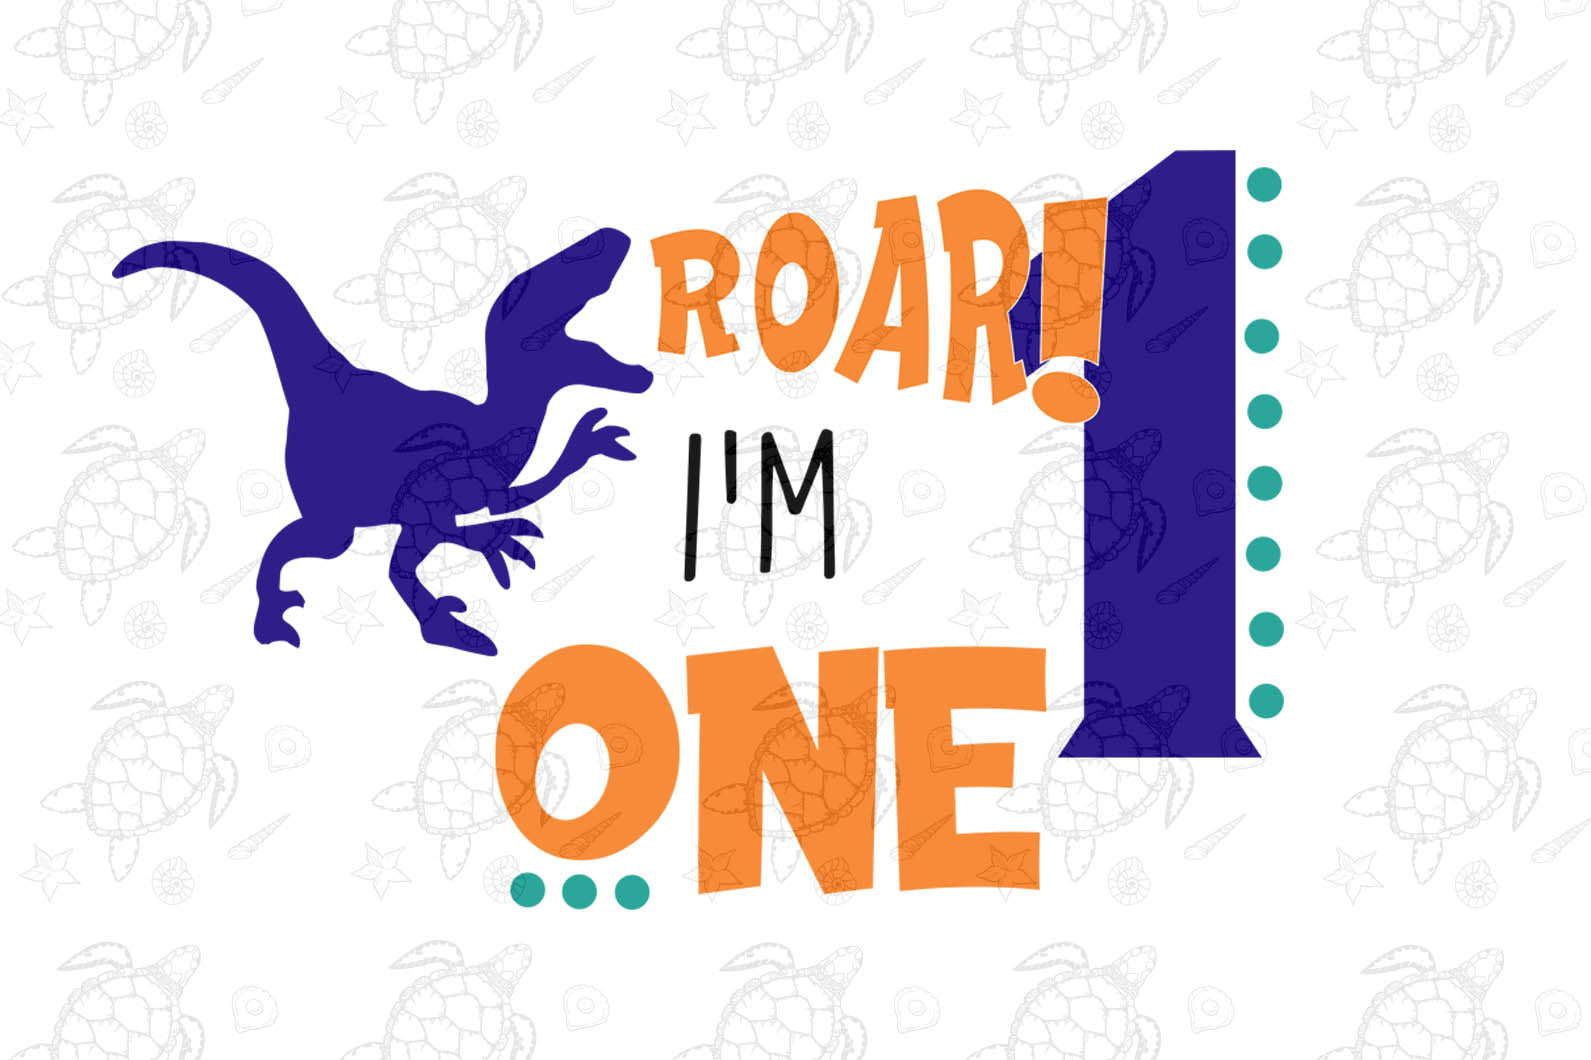 I'm one hear me roar, born in 2020, 2018 svg, 1st birthday party, 1st birthday gift, birthday shirt, birthday anniversary, dinosaur, dinosaur svg, dinosaur birthday, gift for kids, gift from parents, digital file, vinyl for cricut